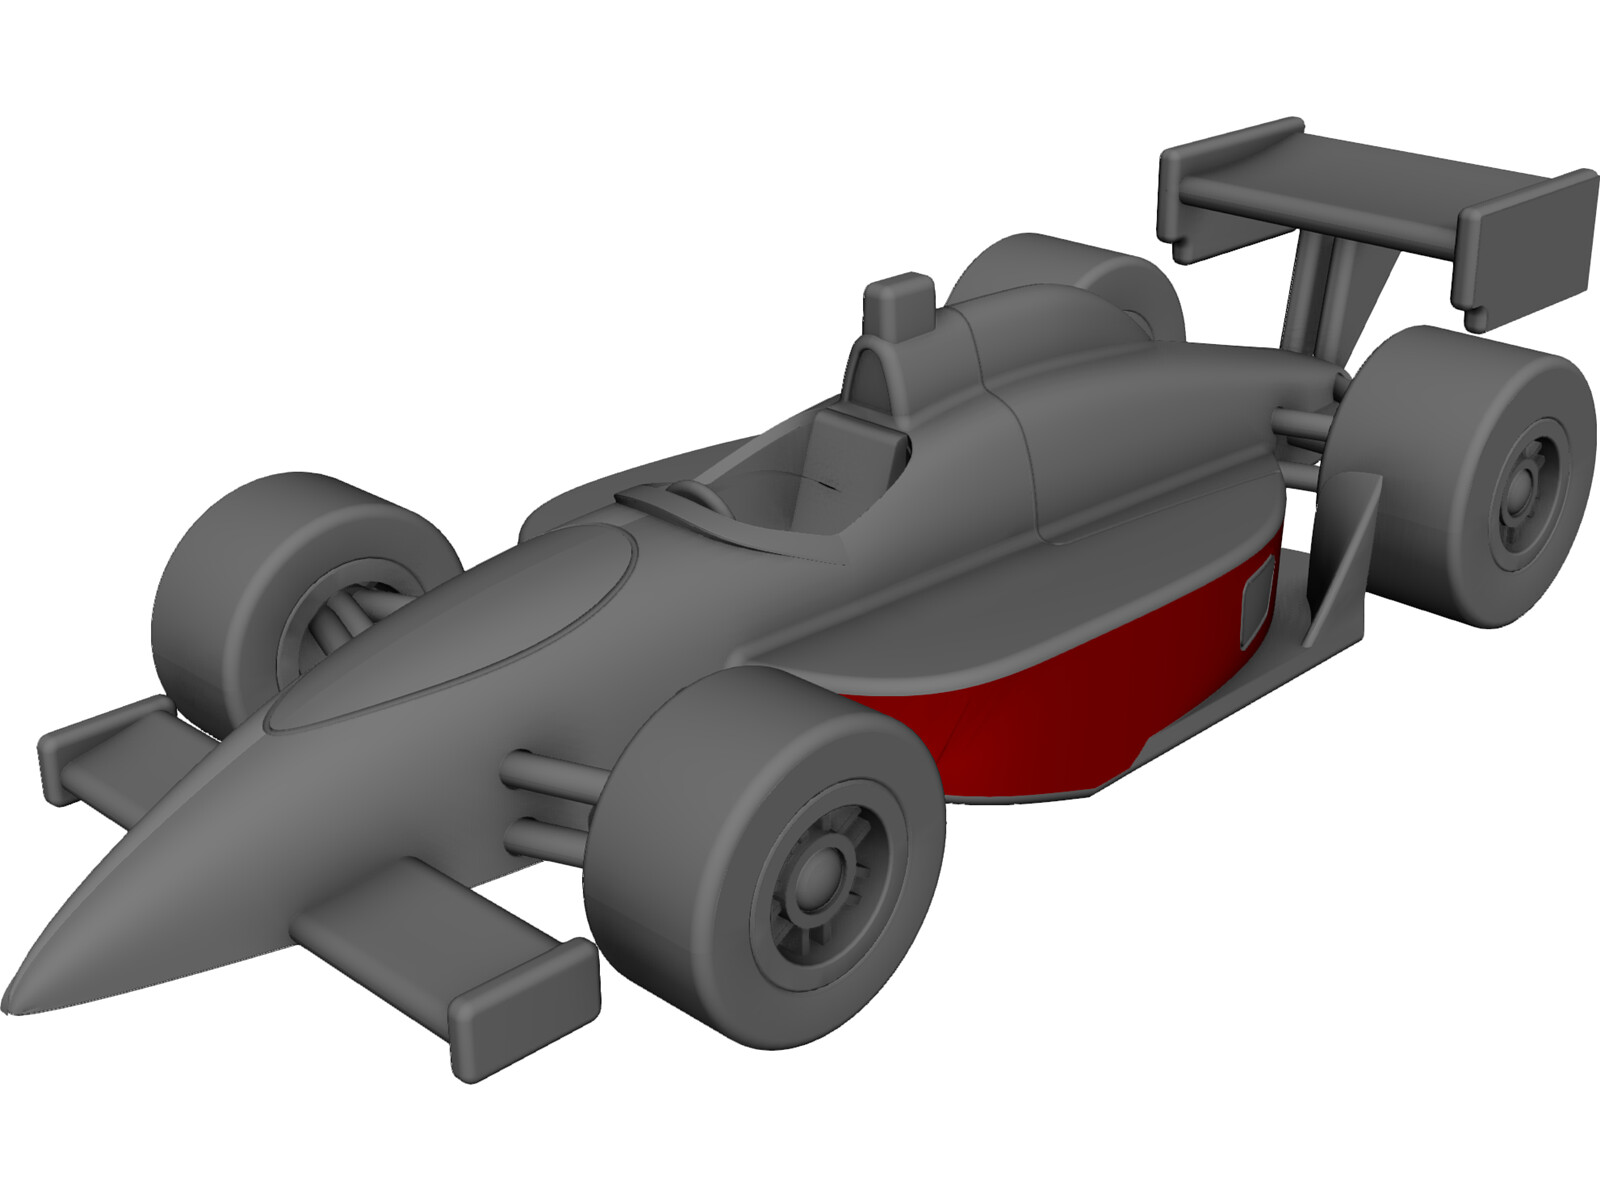 Indy race car 3d cad model download 3d cad browser Cad models